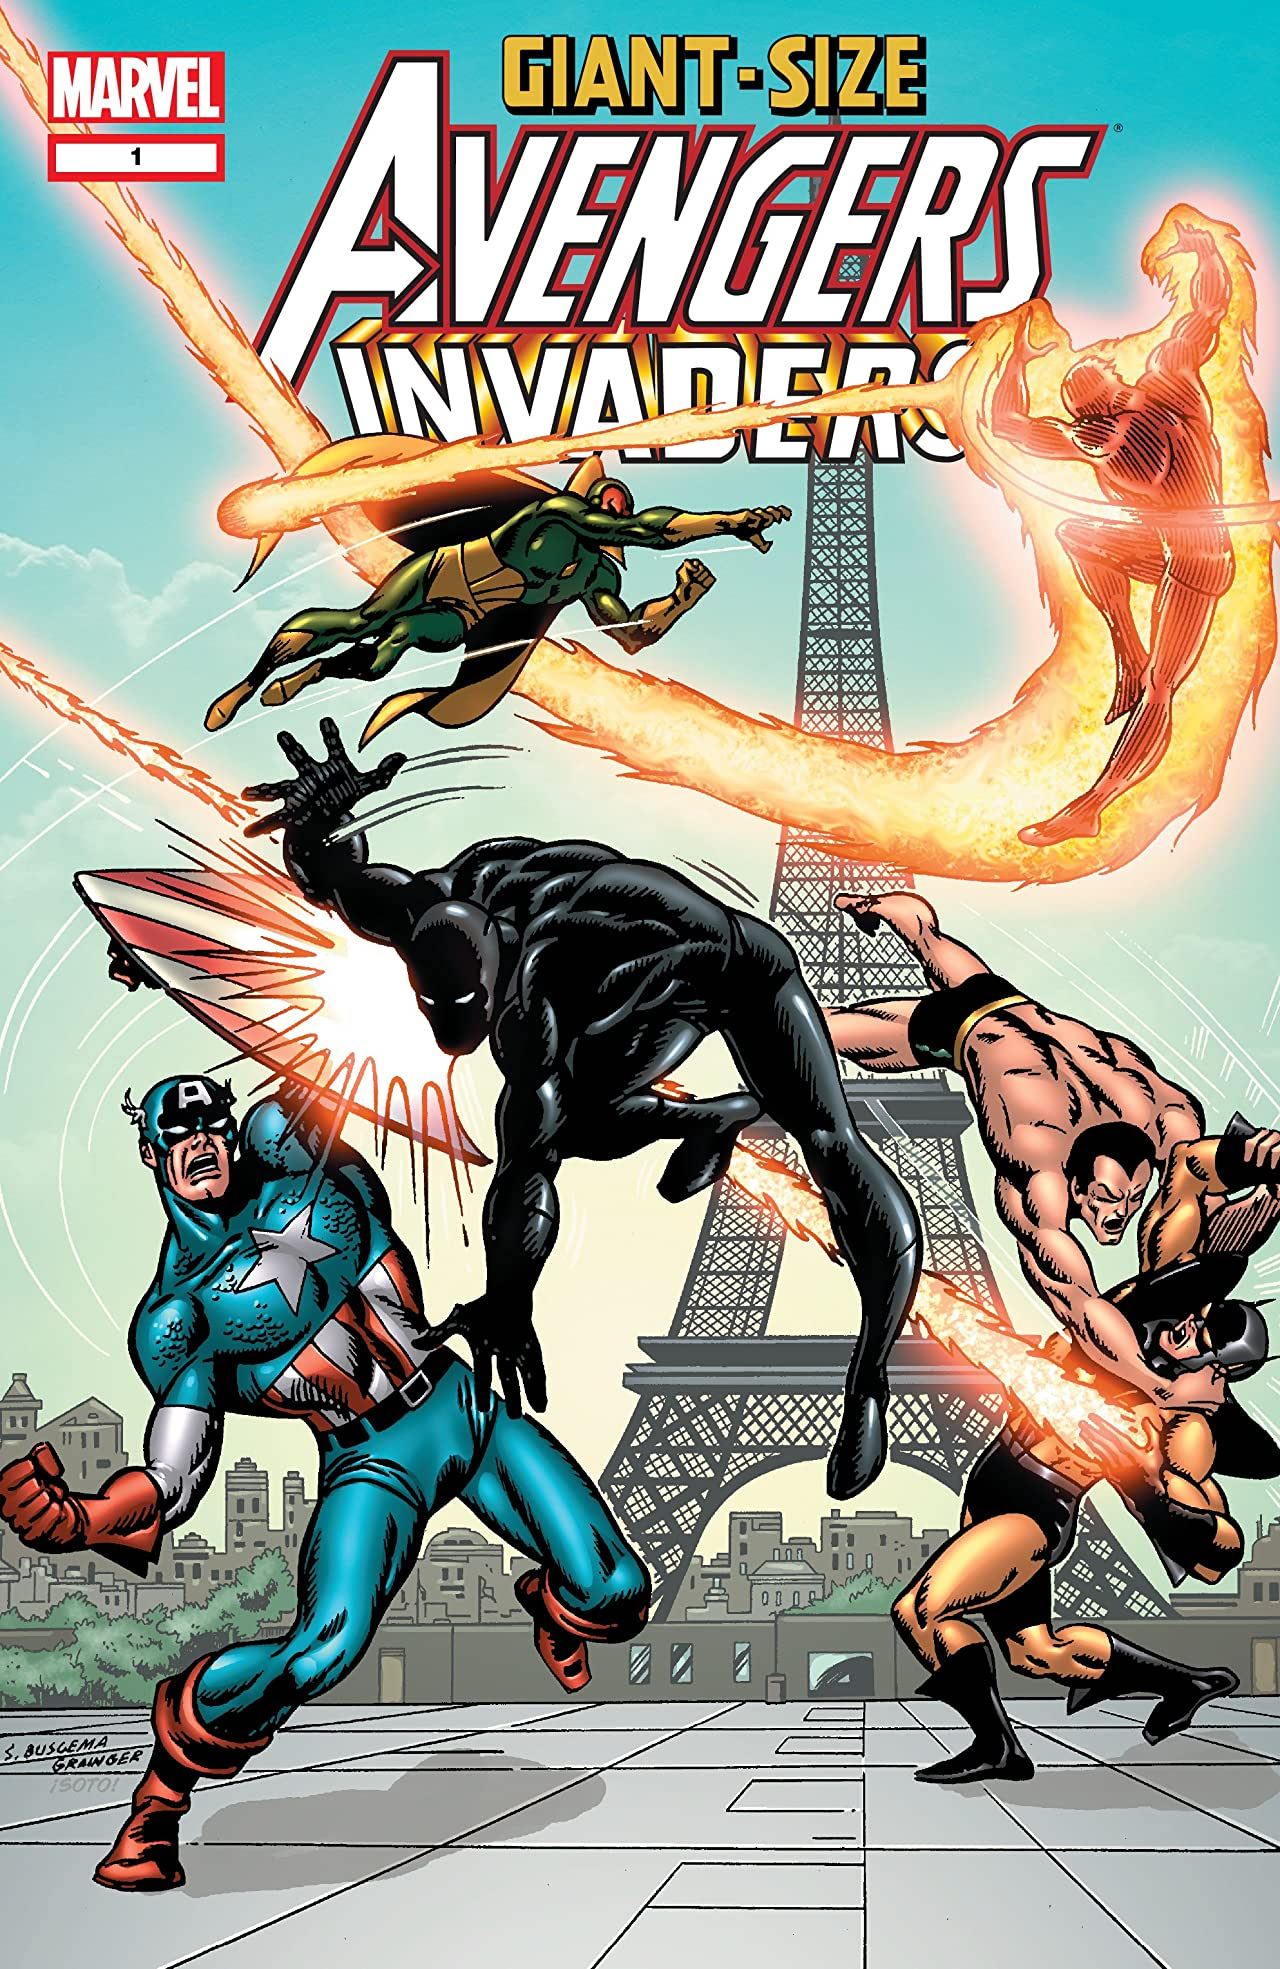 Giant-Size Avengers/Invaders (2008) #1